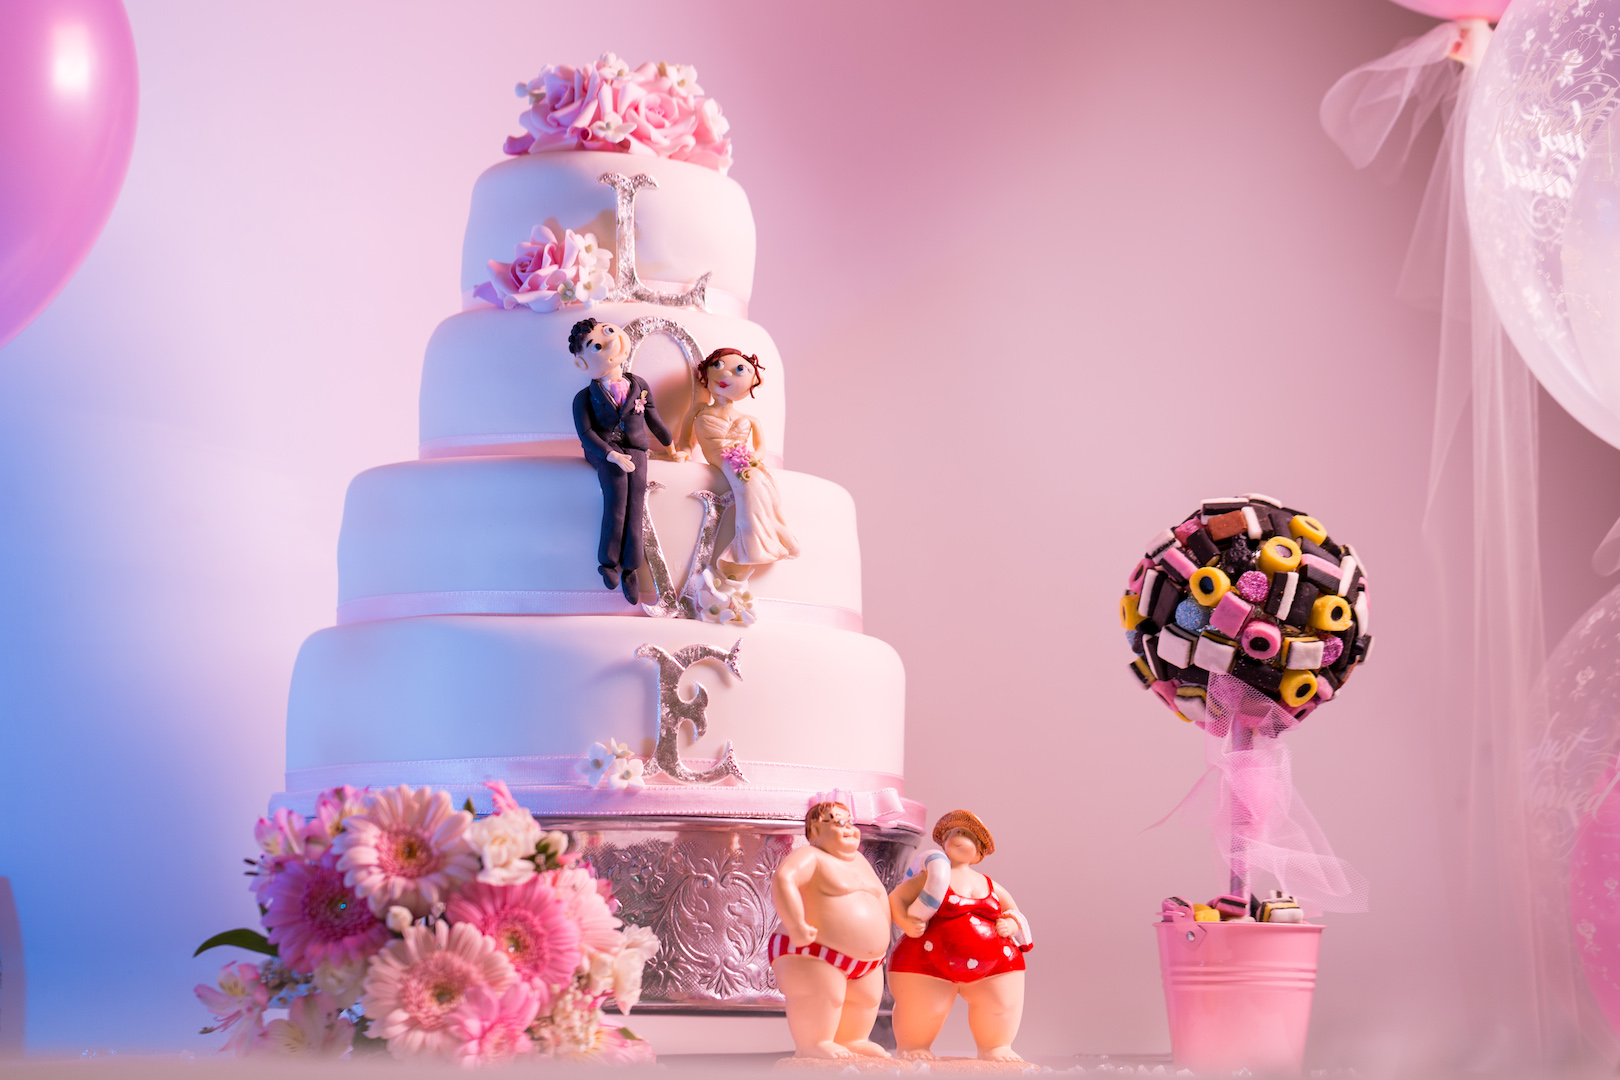 Photoneta-Wedding-cake-1